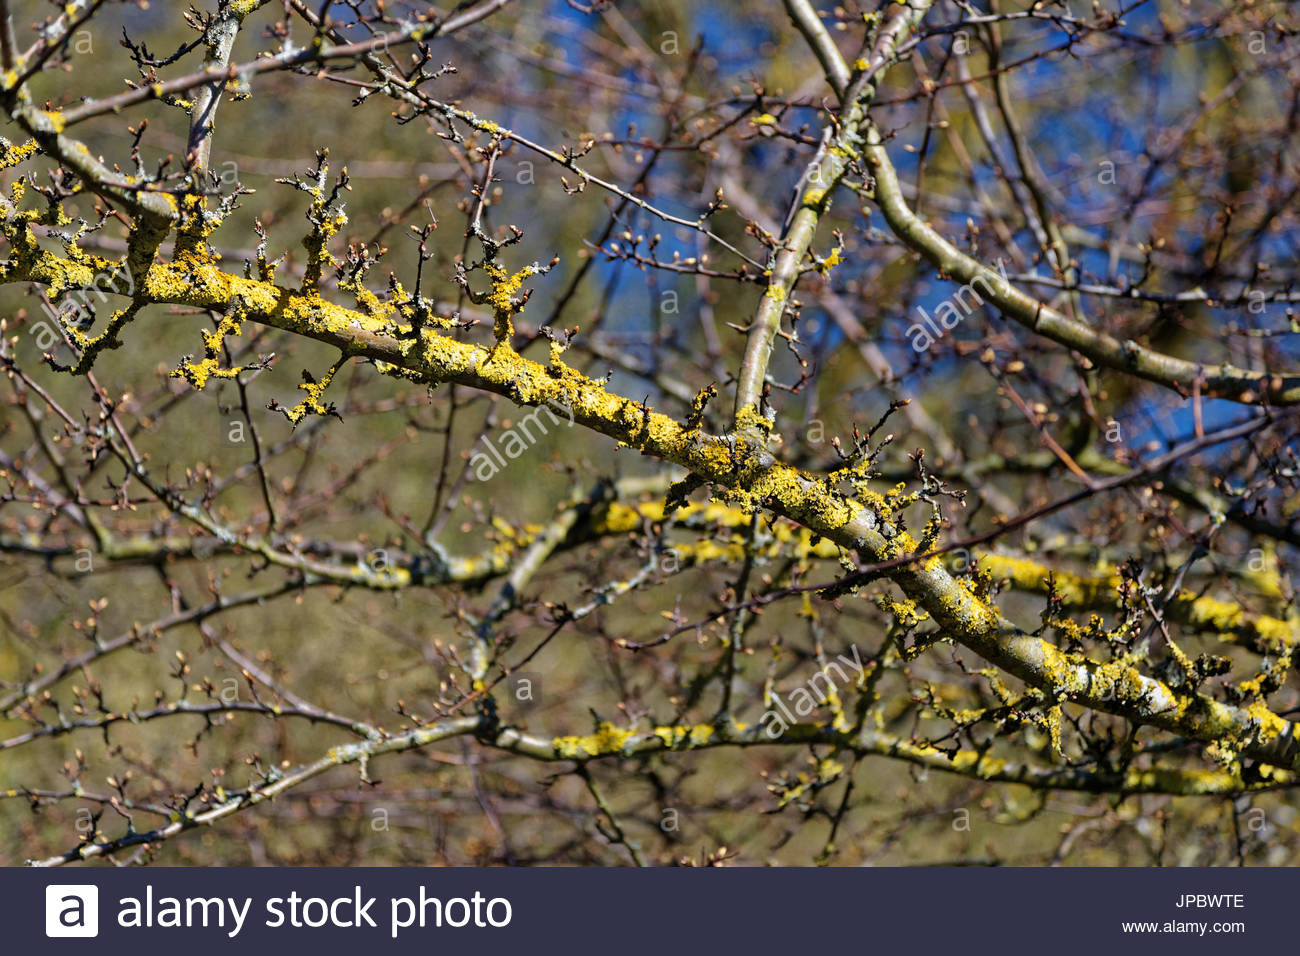 Hawthorn branch with crustose areolate lichen growth fungus organism biology ecology biotope nature Eifel hills Germany - Stock Image